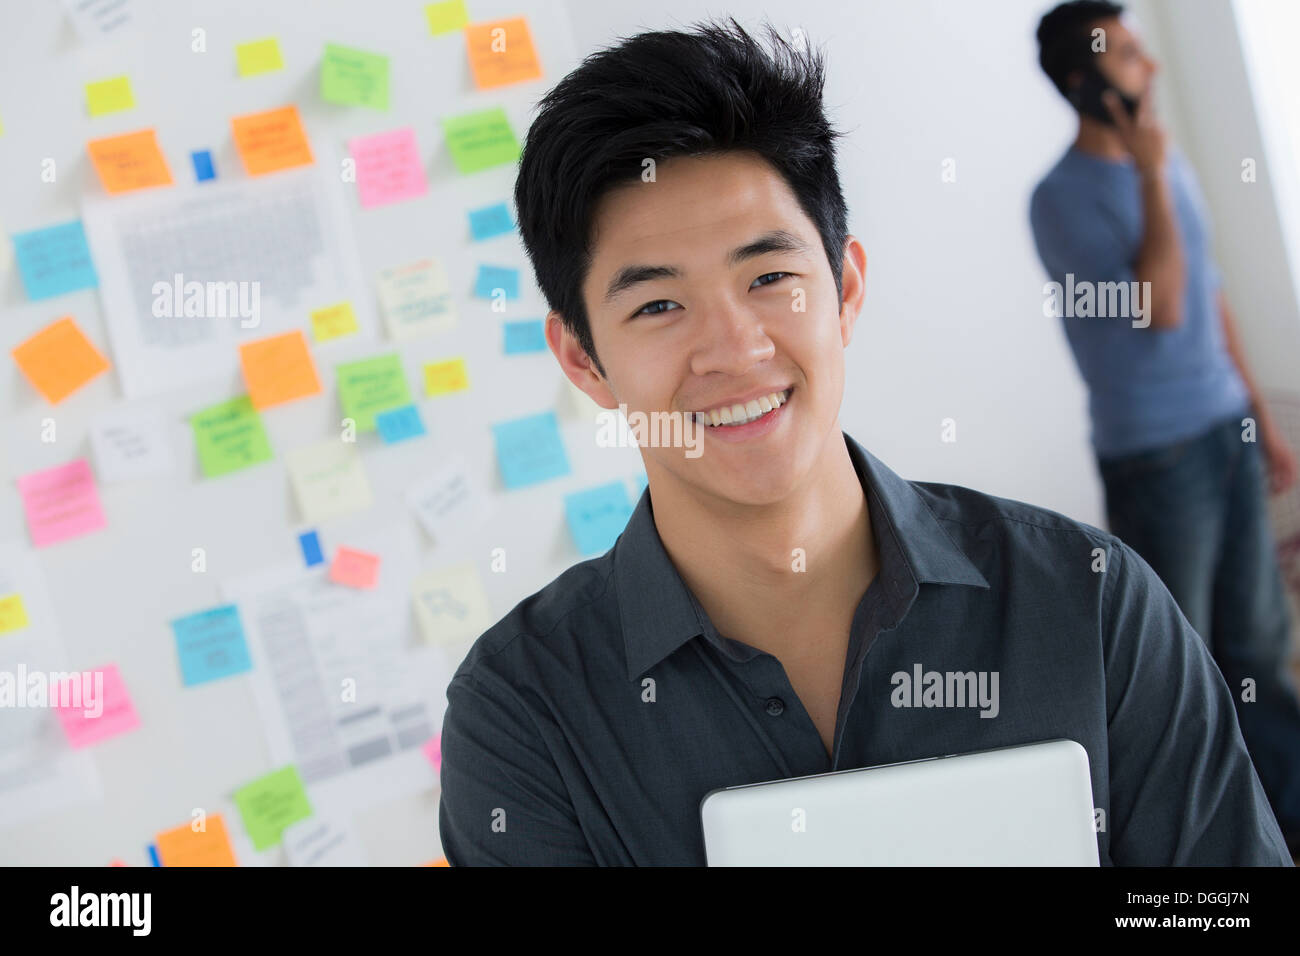 Male office worker holding digital tablet - Stock Image